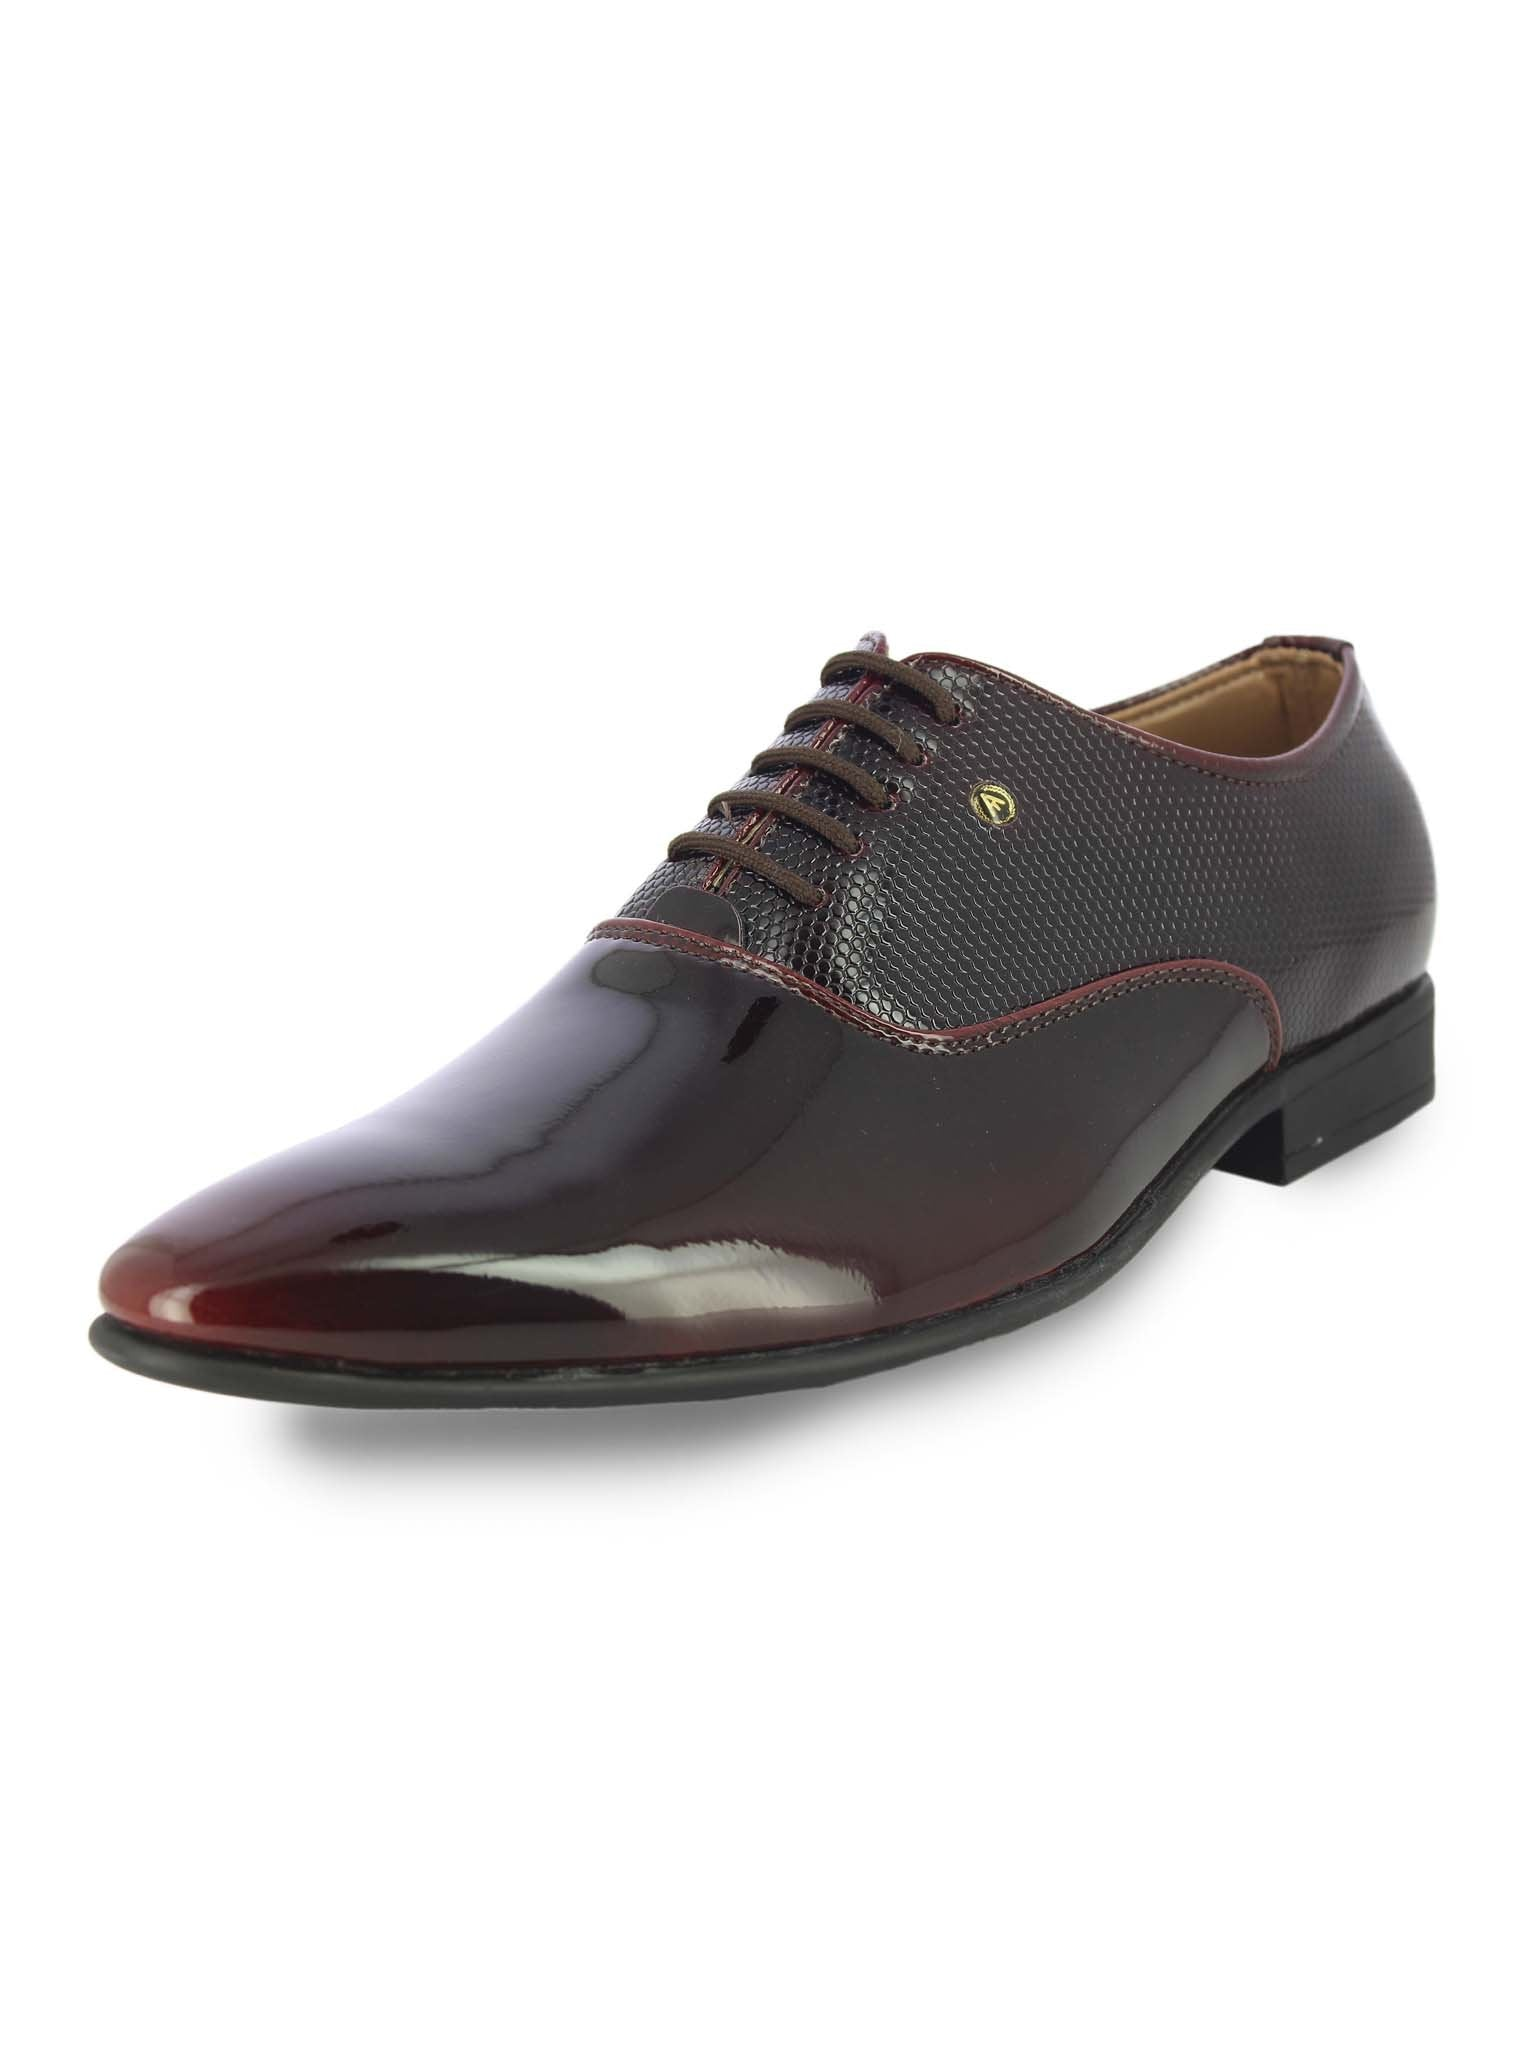 Alberto Torresi Men's Liam Cherry Formal Shoes